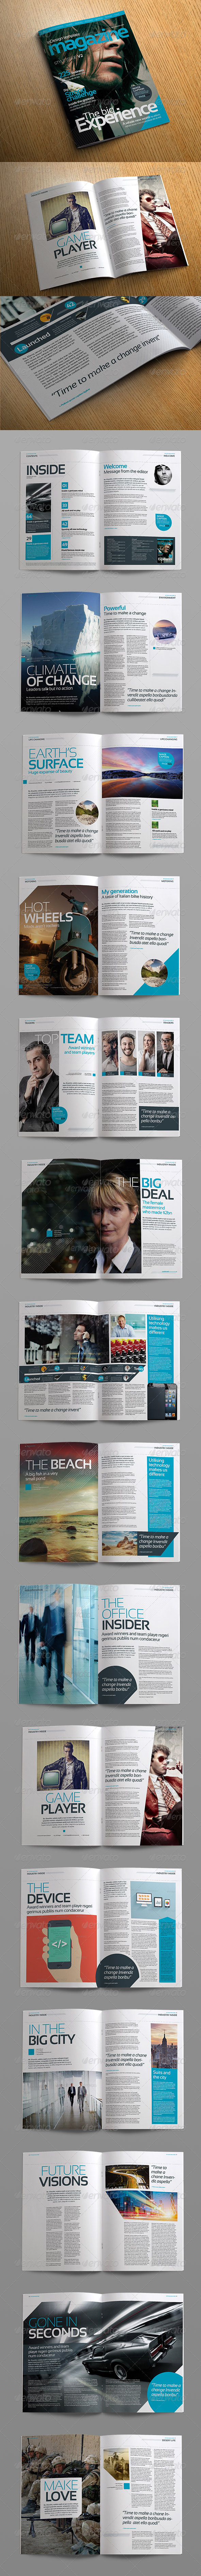 Stylish Volume 2 InDesign Magazine Template - Magazines Print Templates